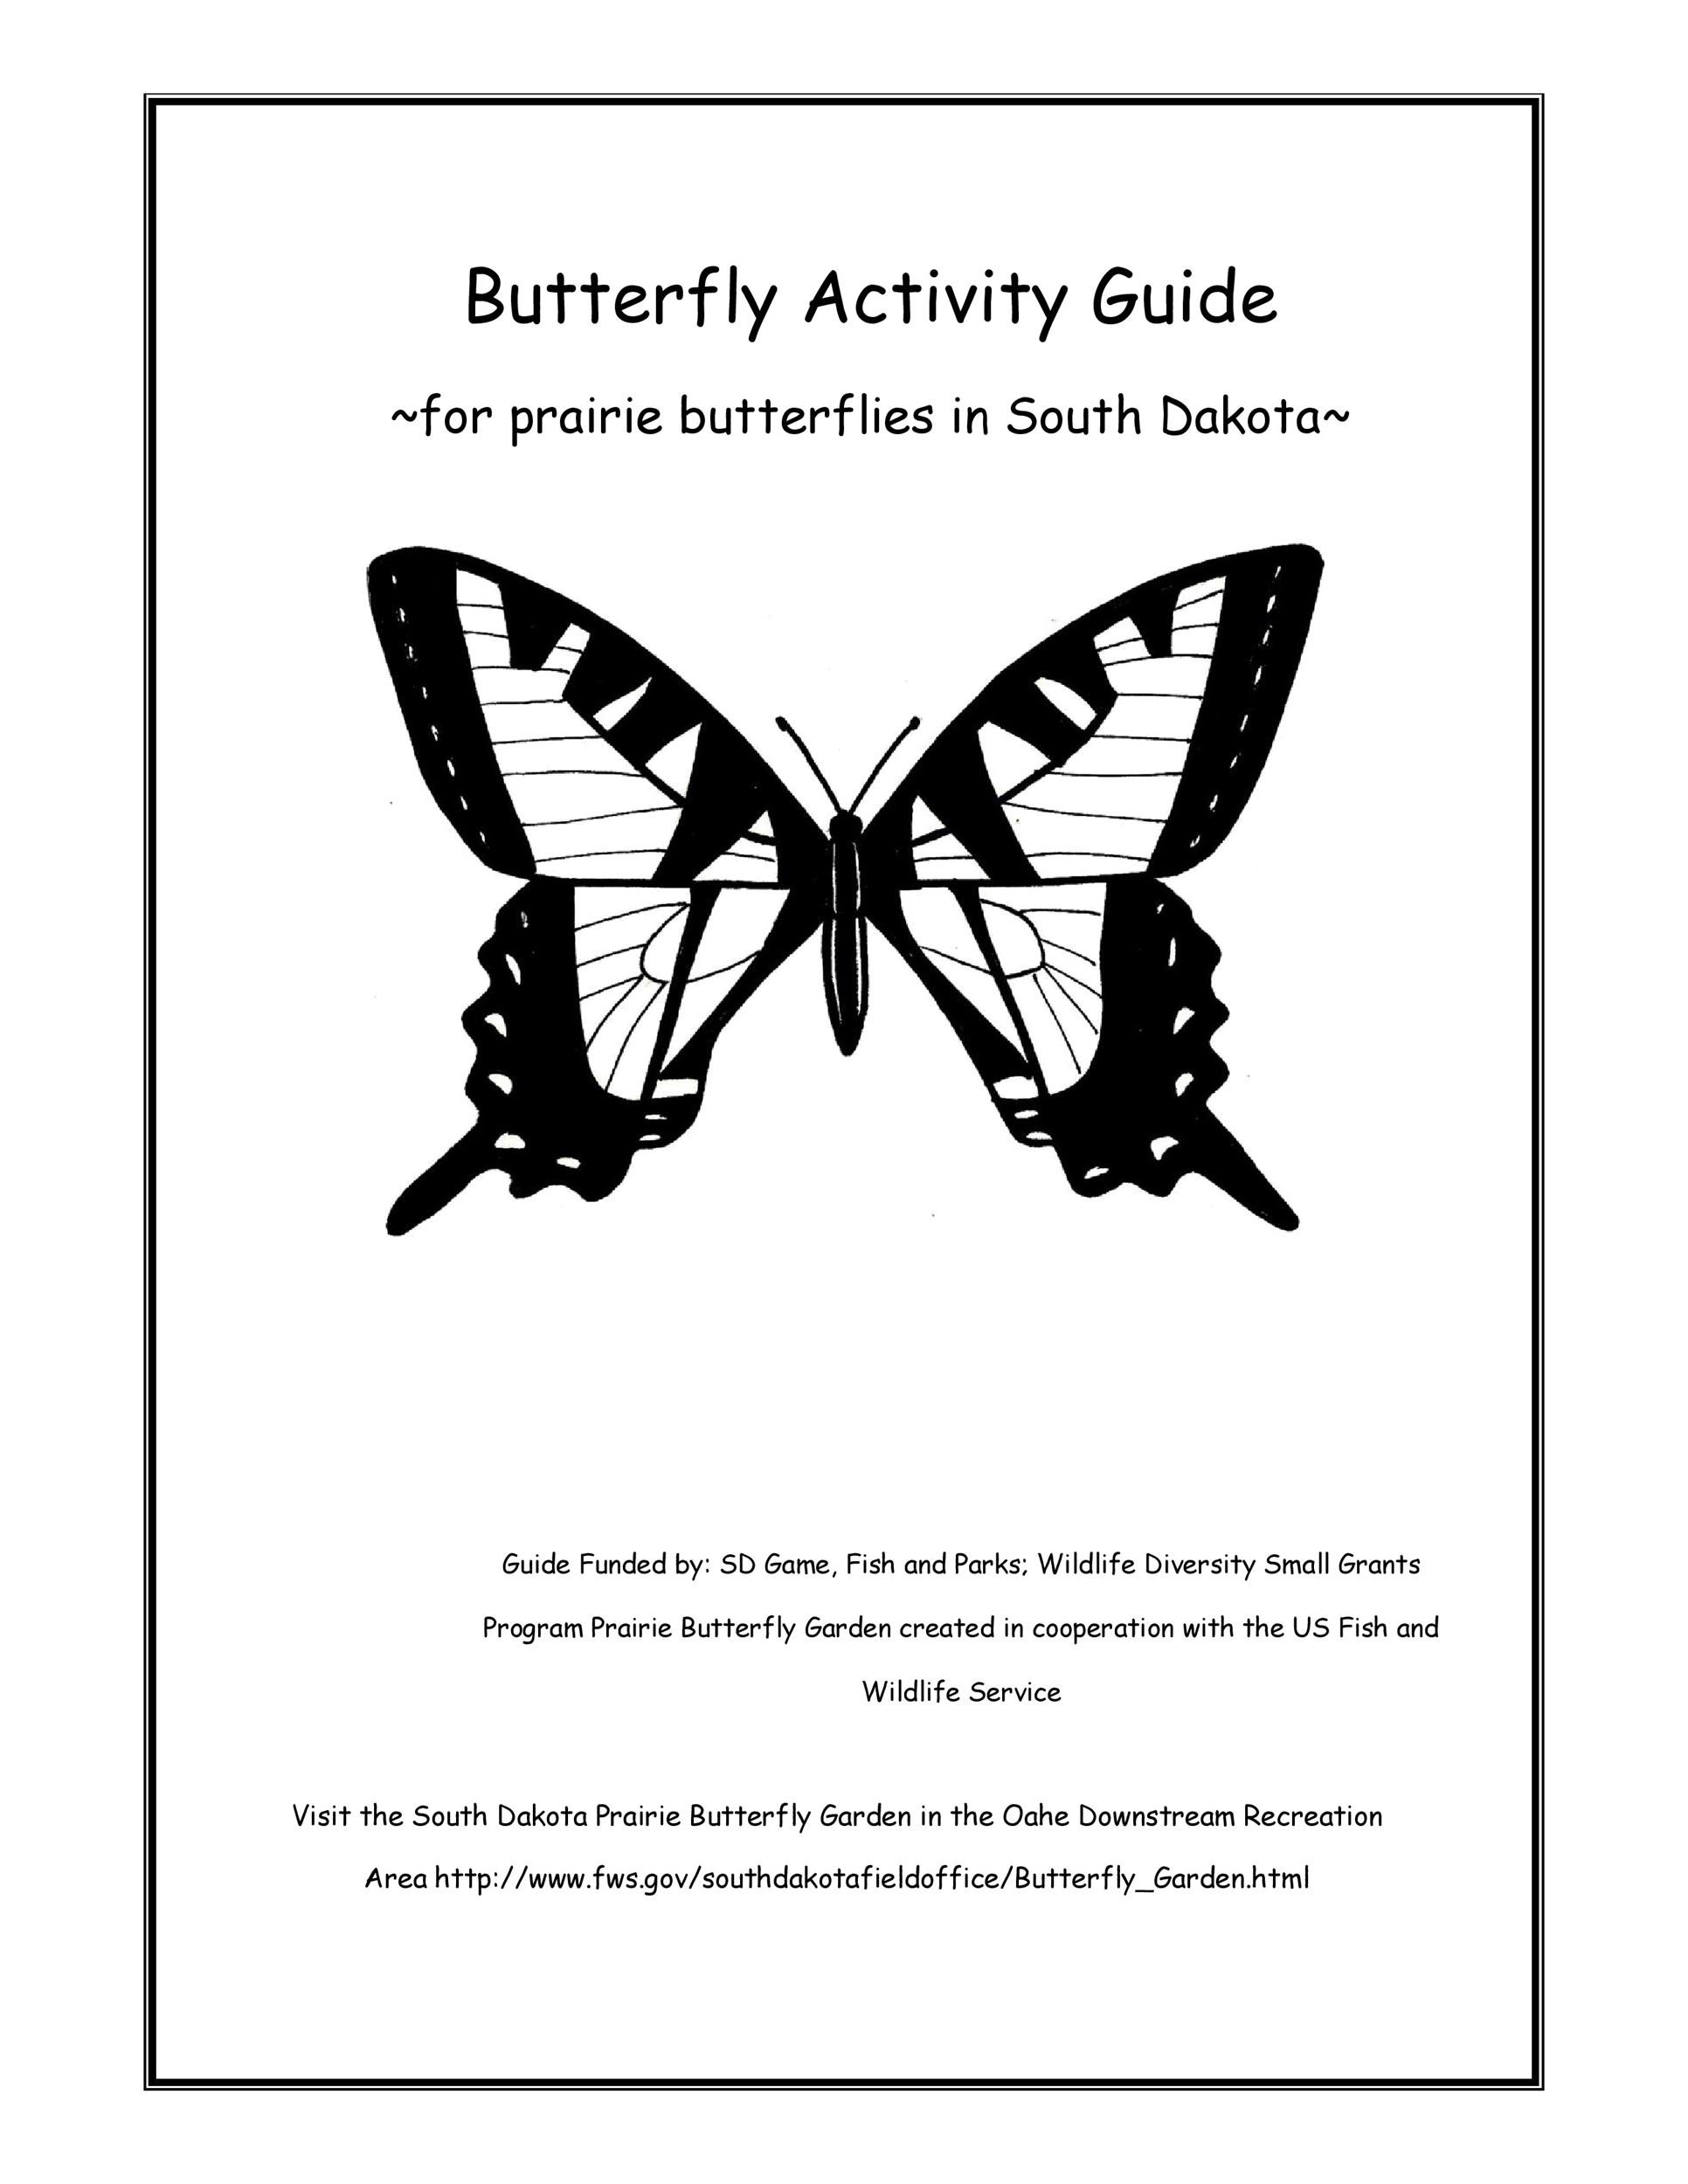 50 Printable Amp Cut Out Butterfly Templates Templatelab